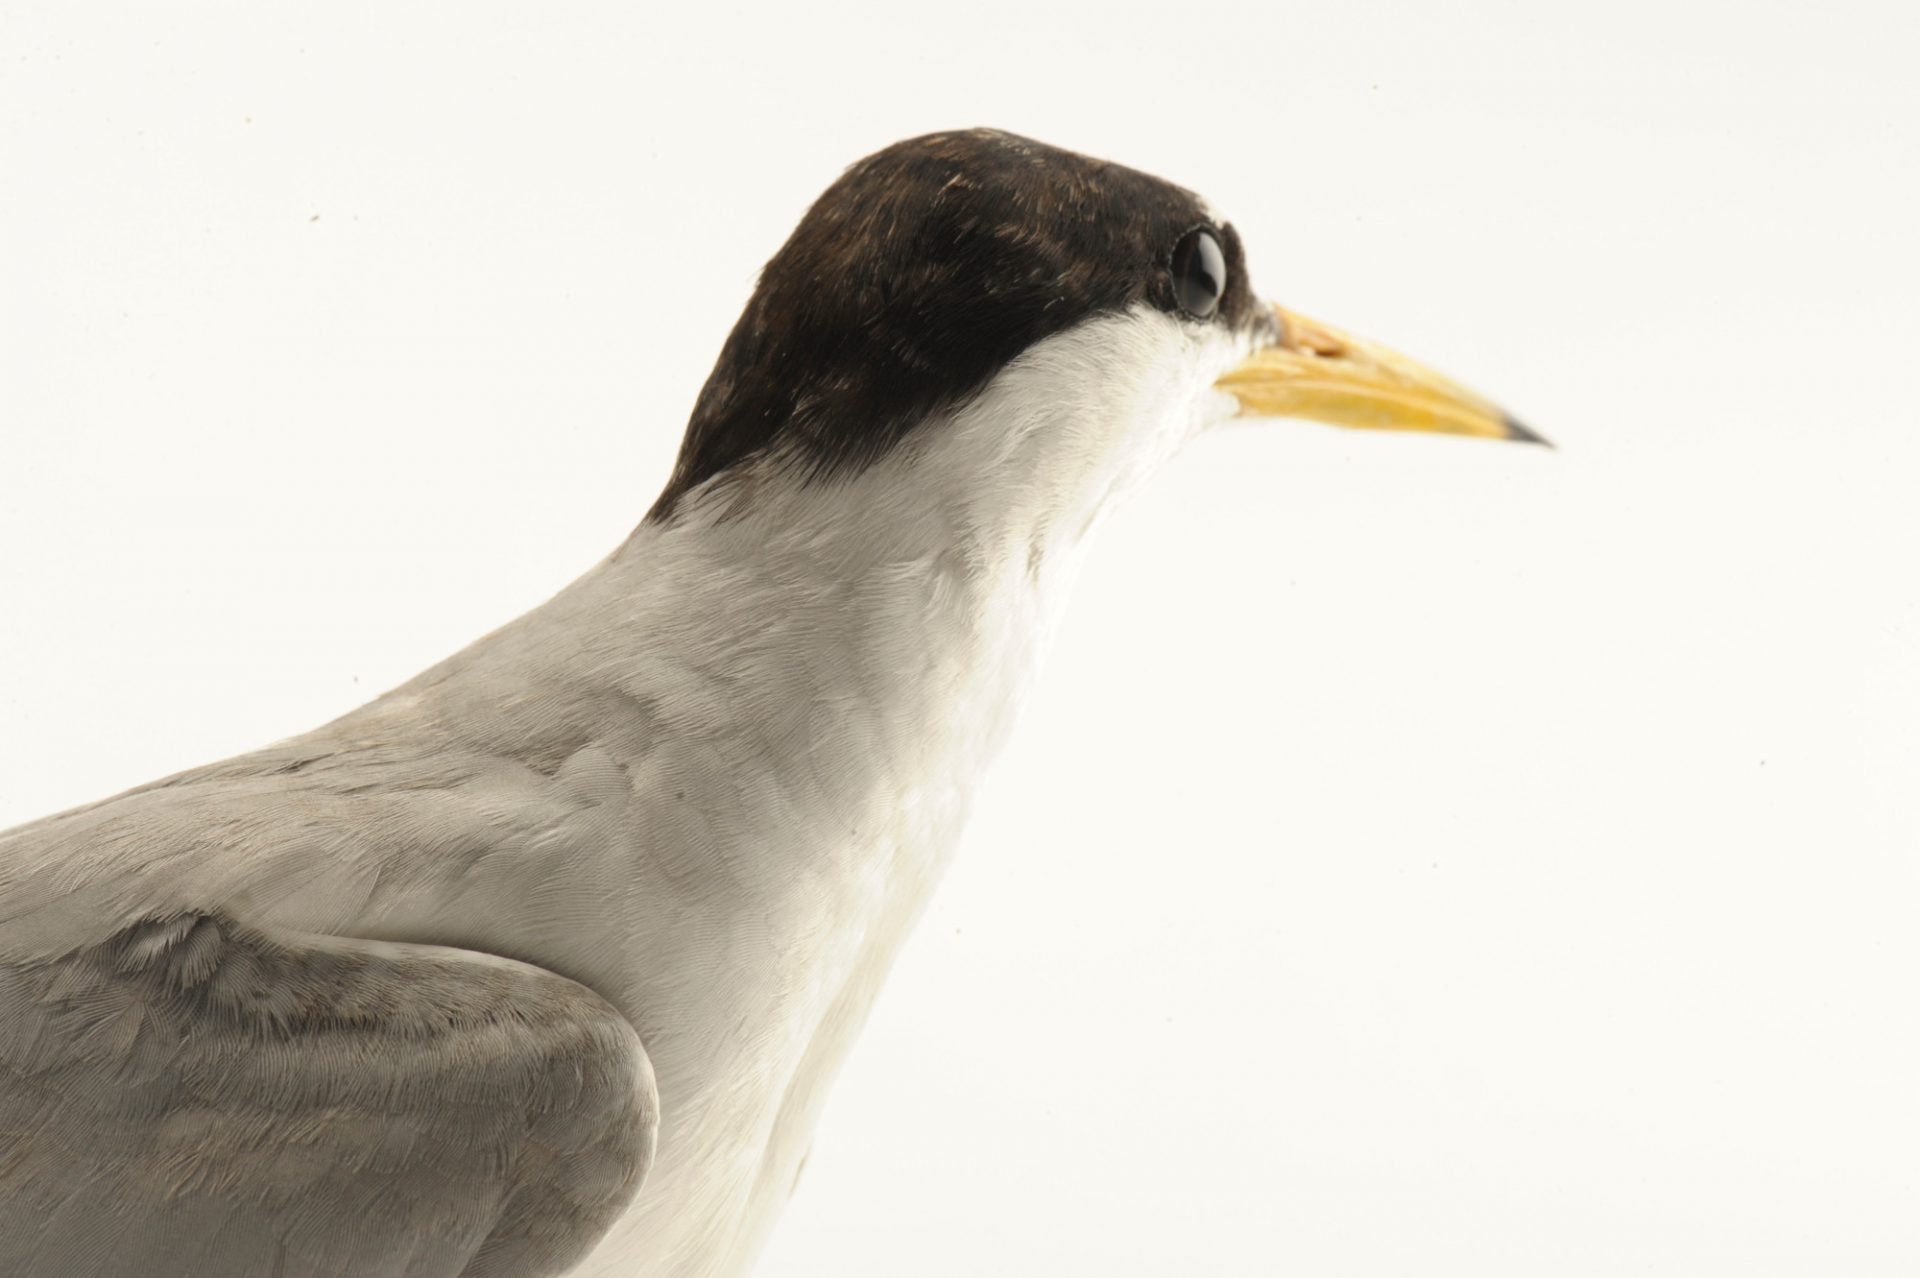 Photo: A federally endangered interior least tern (Sterna antillarum athalassos).